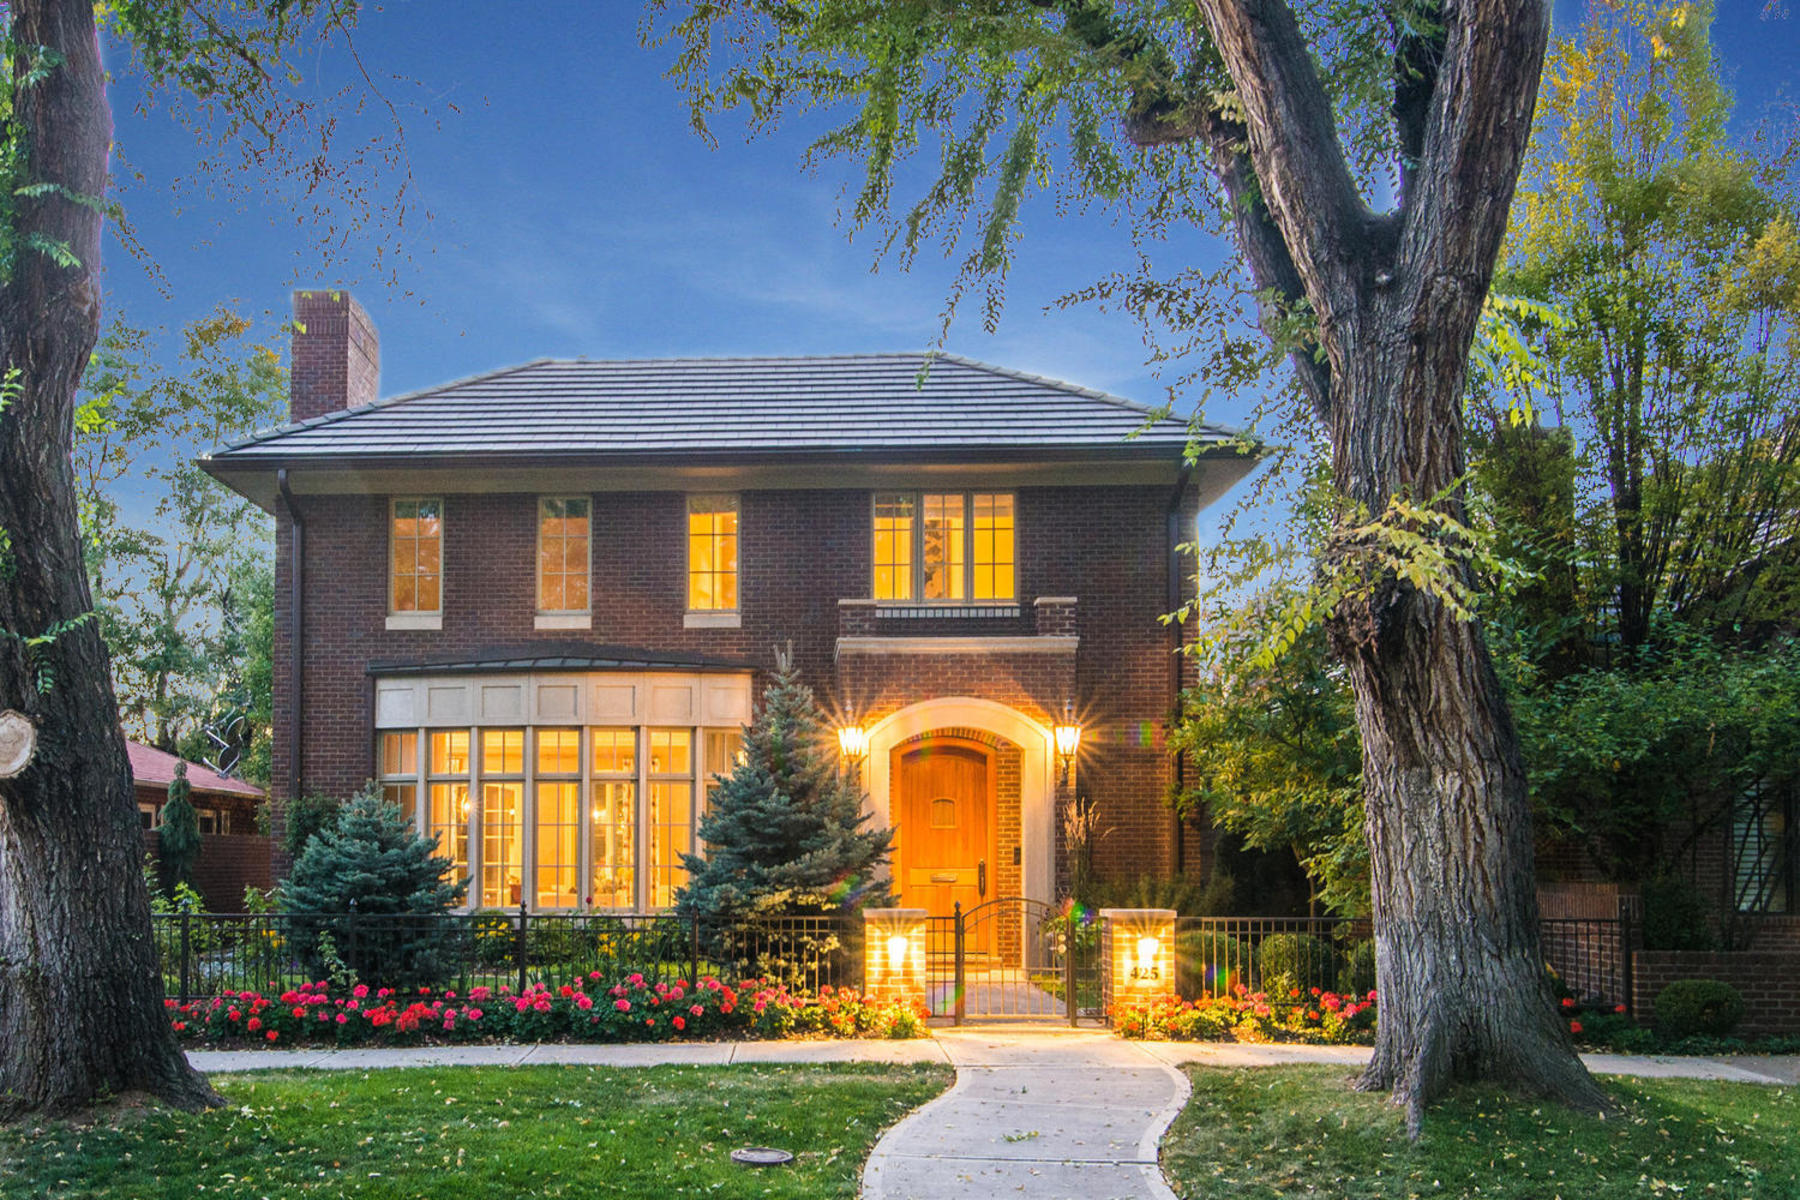 Single Family Homes for Sale at Beautiful Brick Home on One of Cherry Creek North's Best Clocks 425 Monroe Street Denver, Colorado 80206 United States